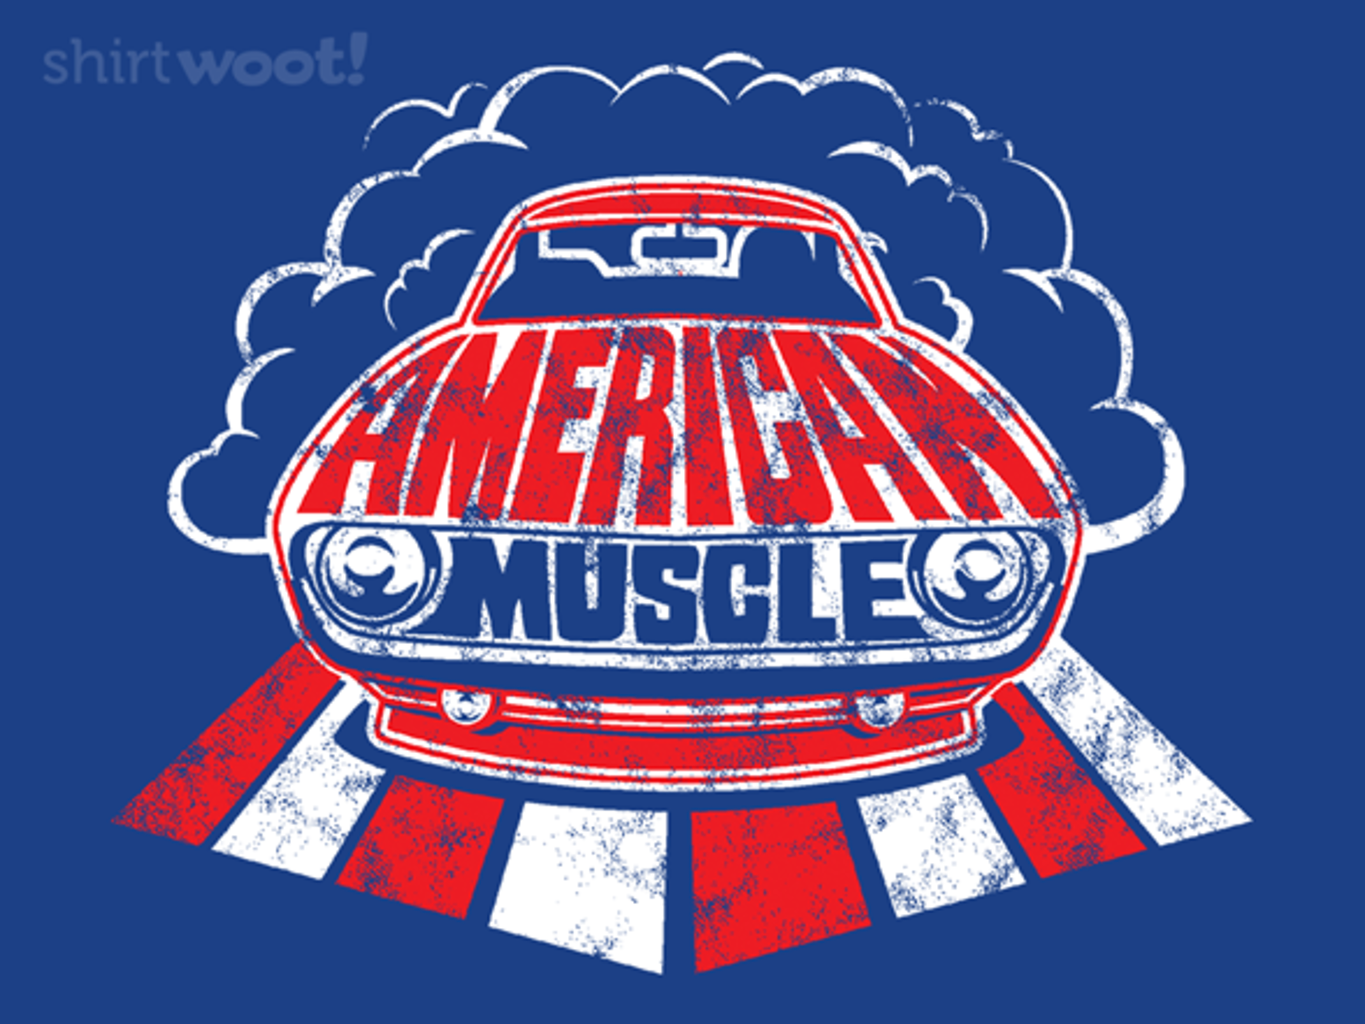 Woot!: Classic American Muscle